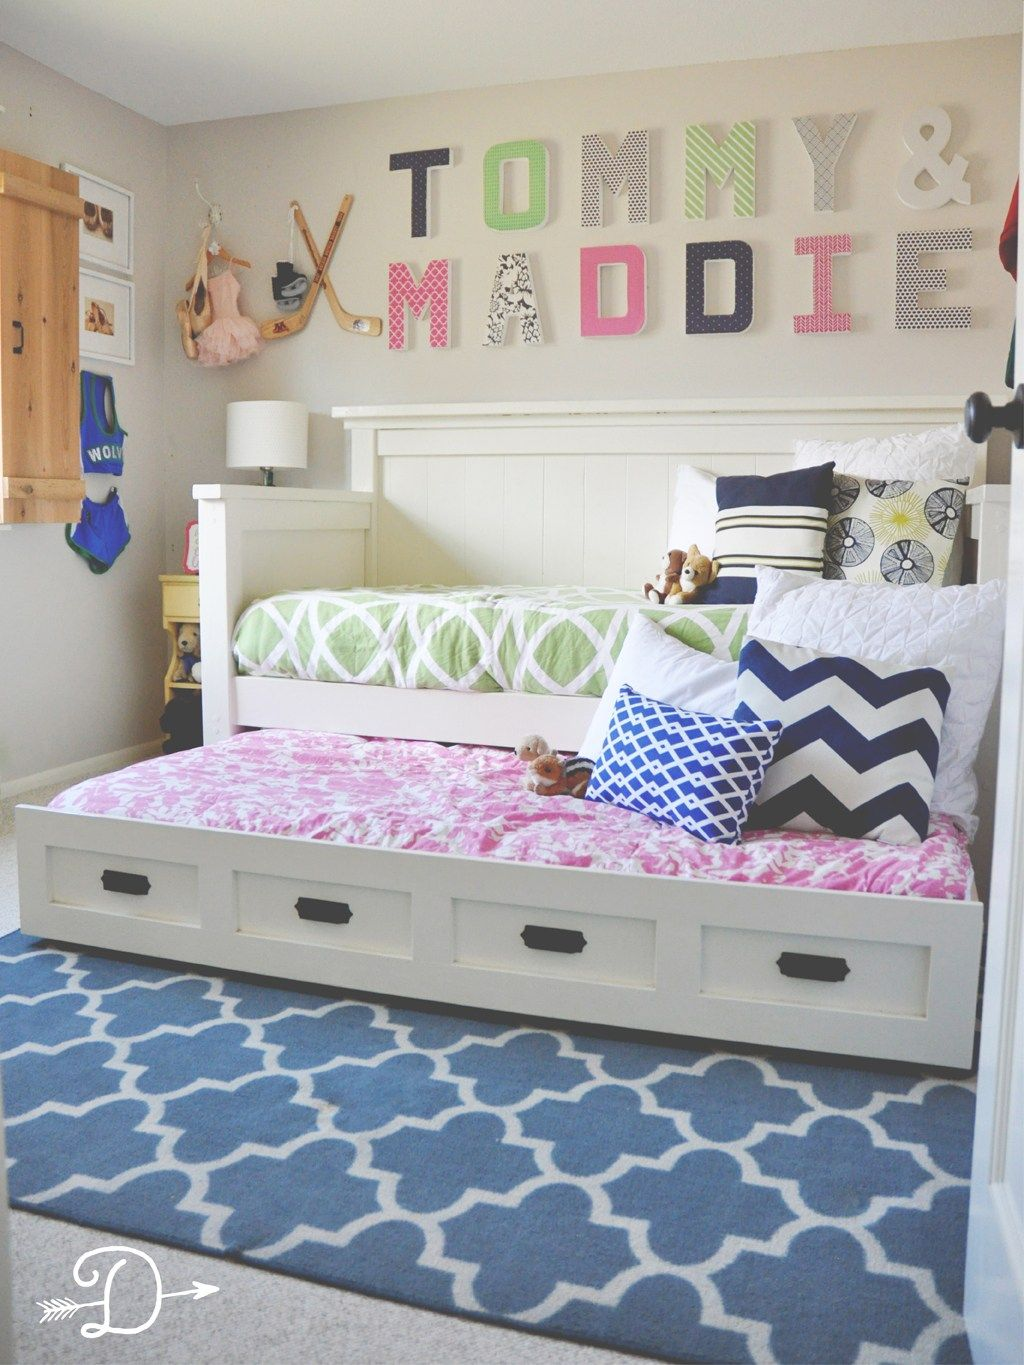 Bedroom Ideas For Baby Boy And Girl Sharing: Boy And Girl Shared Bedroom